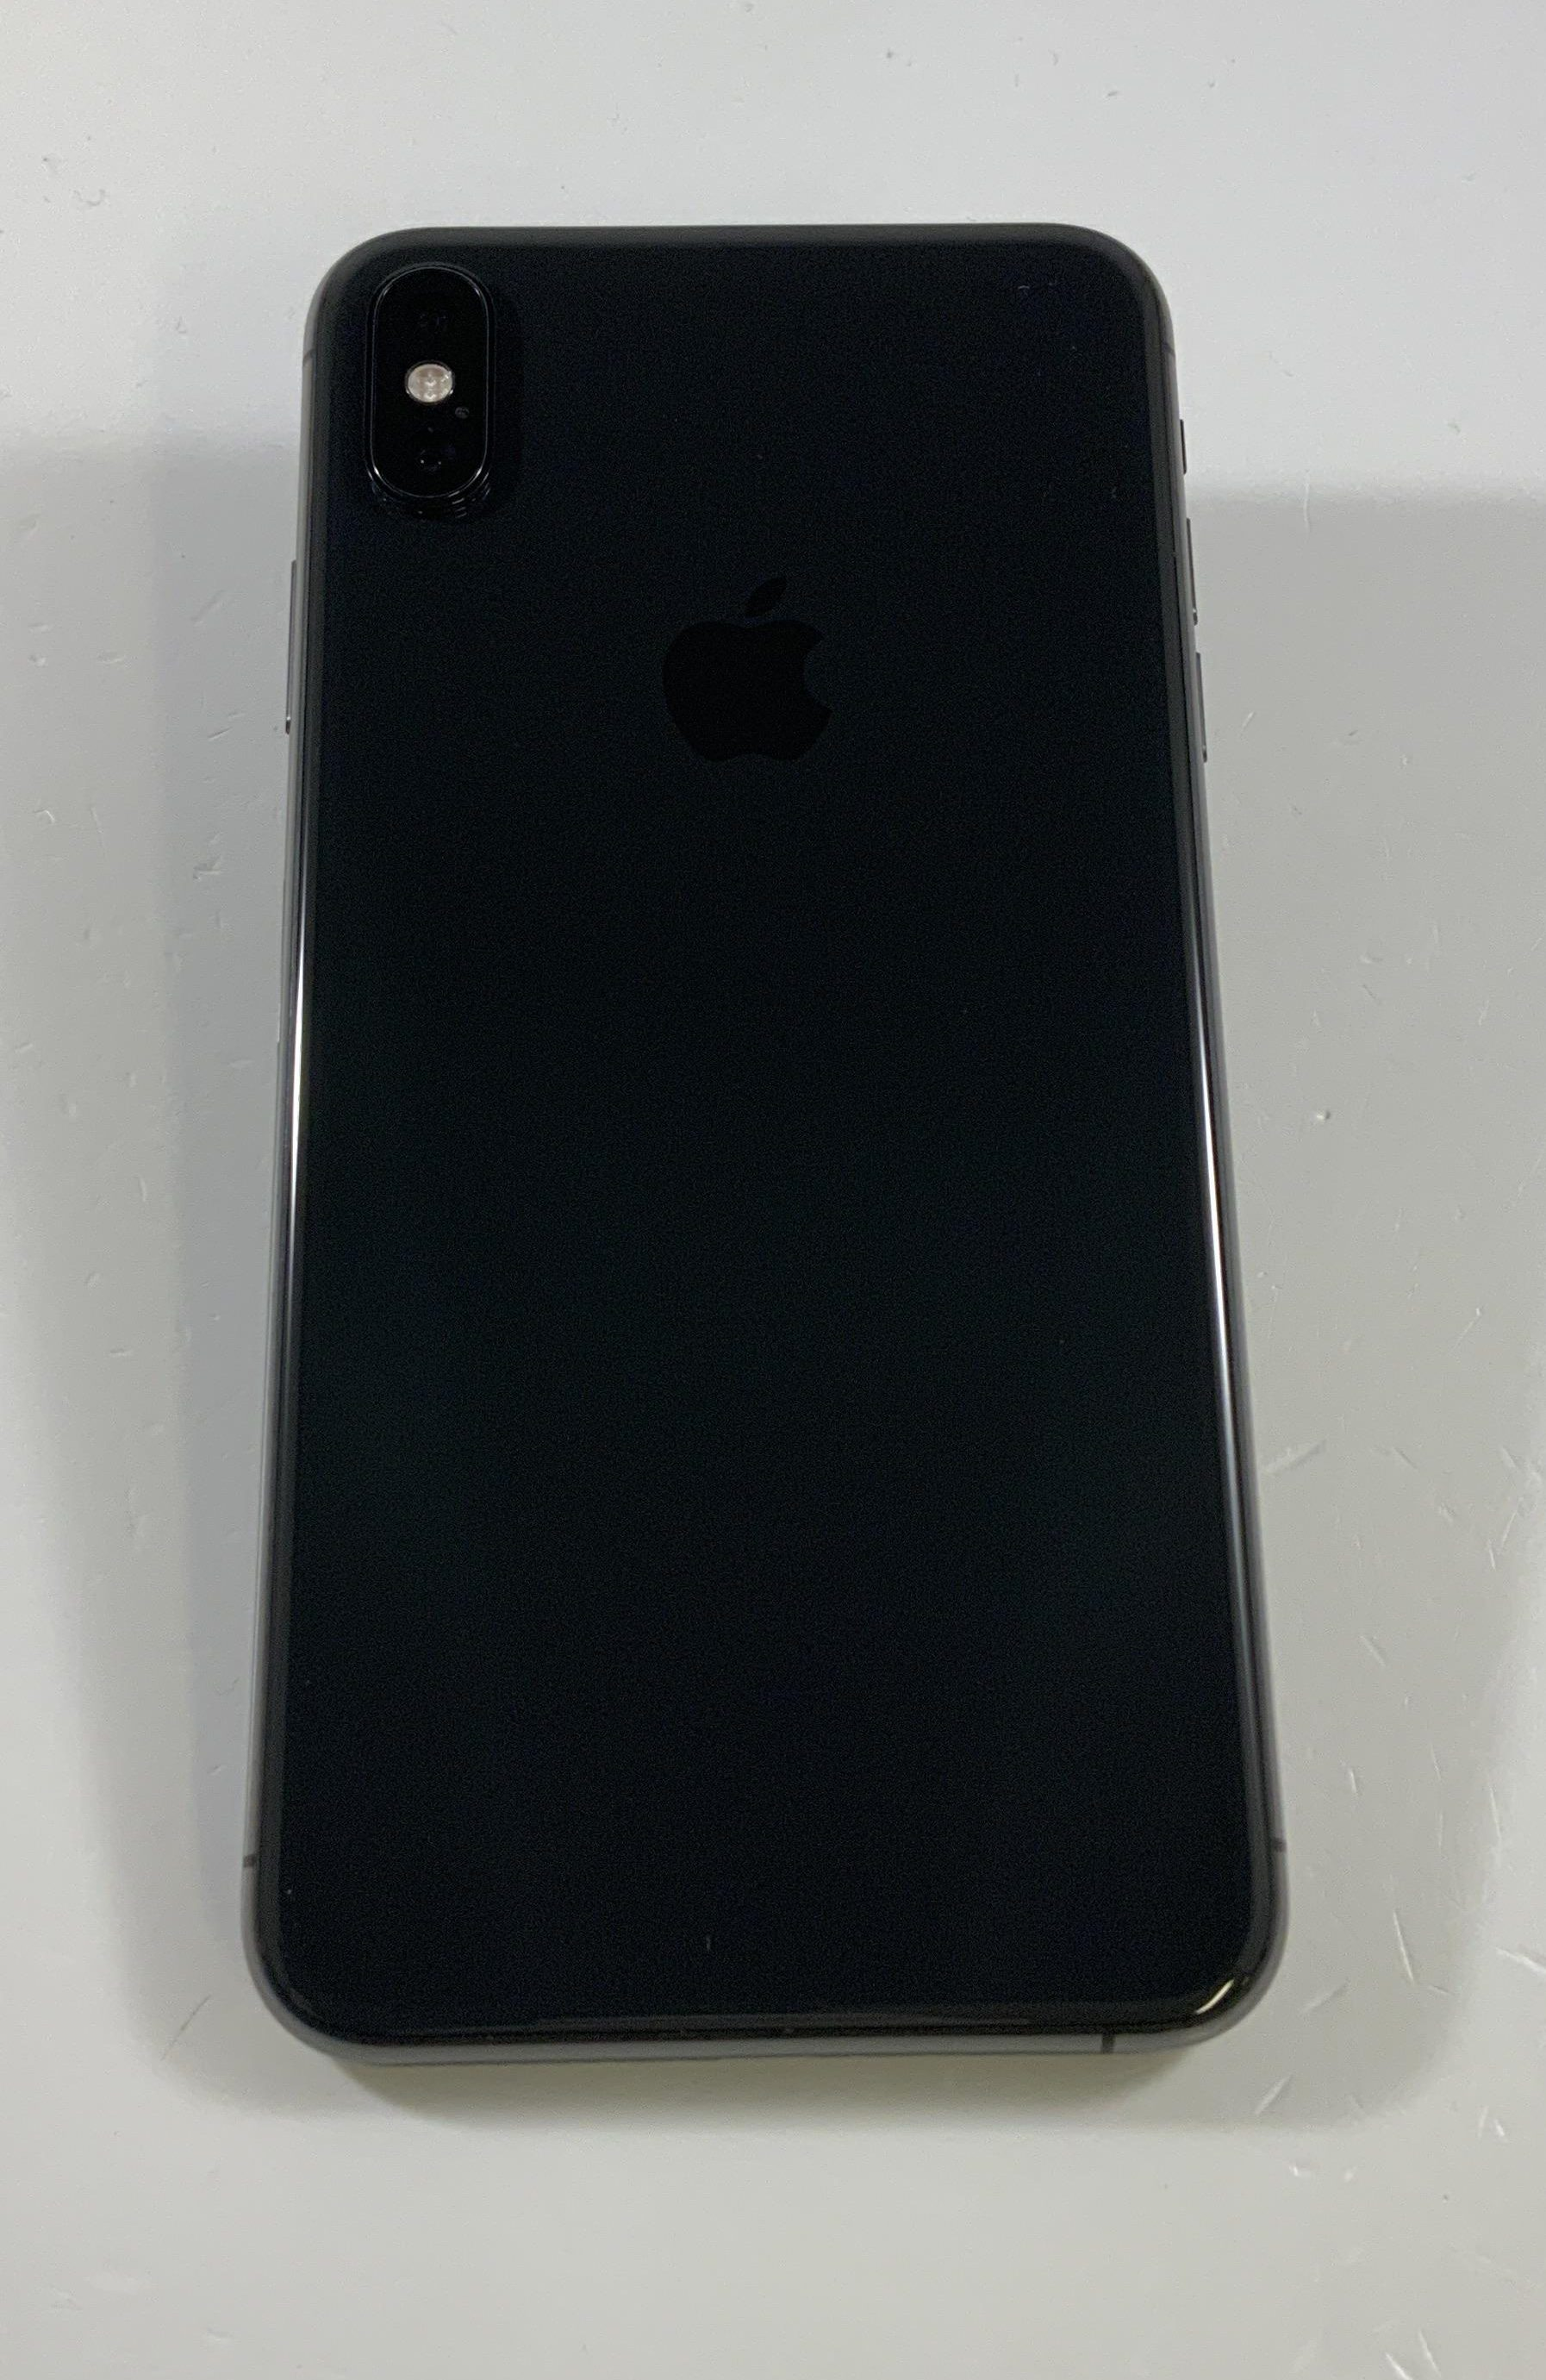 iPhone XS Max 256GB, 256GB, Space Gray, immagine 2